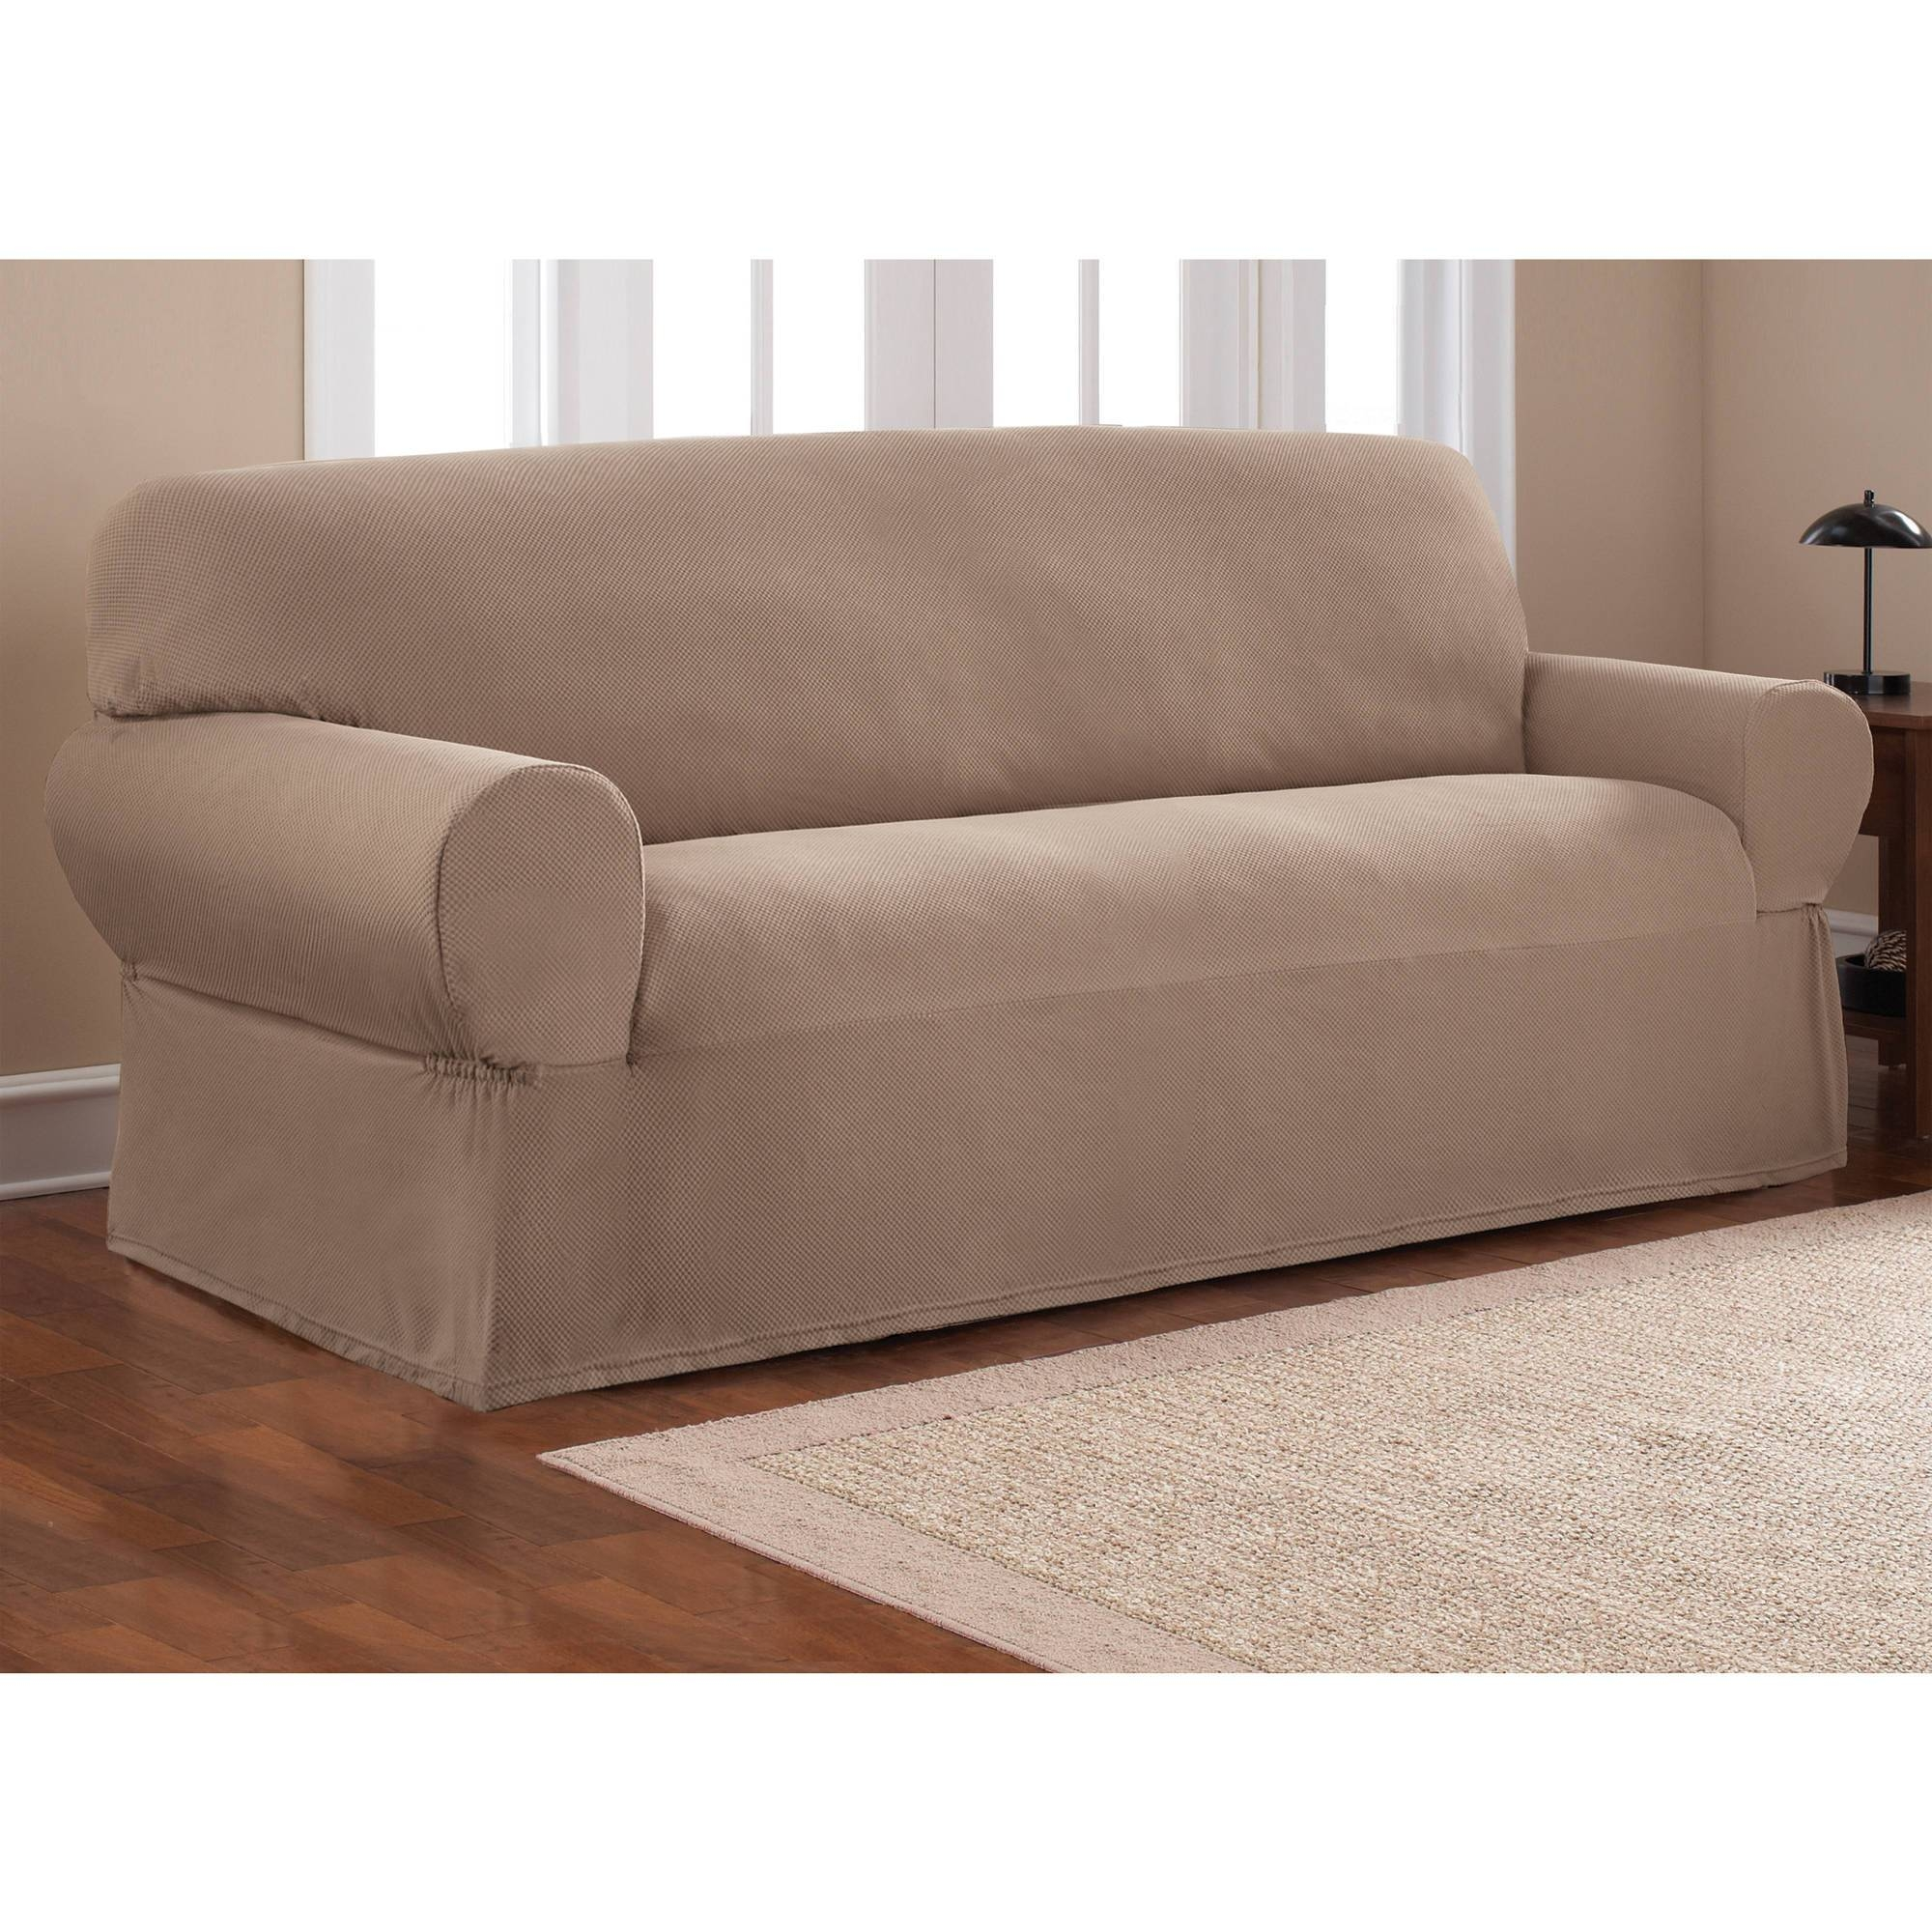 Mainstays 1-Piece Stretch Fabric Sofa Slipcover - Walmart intended for Sofa Settee Covers (Image 19 of 30)